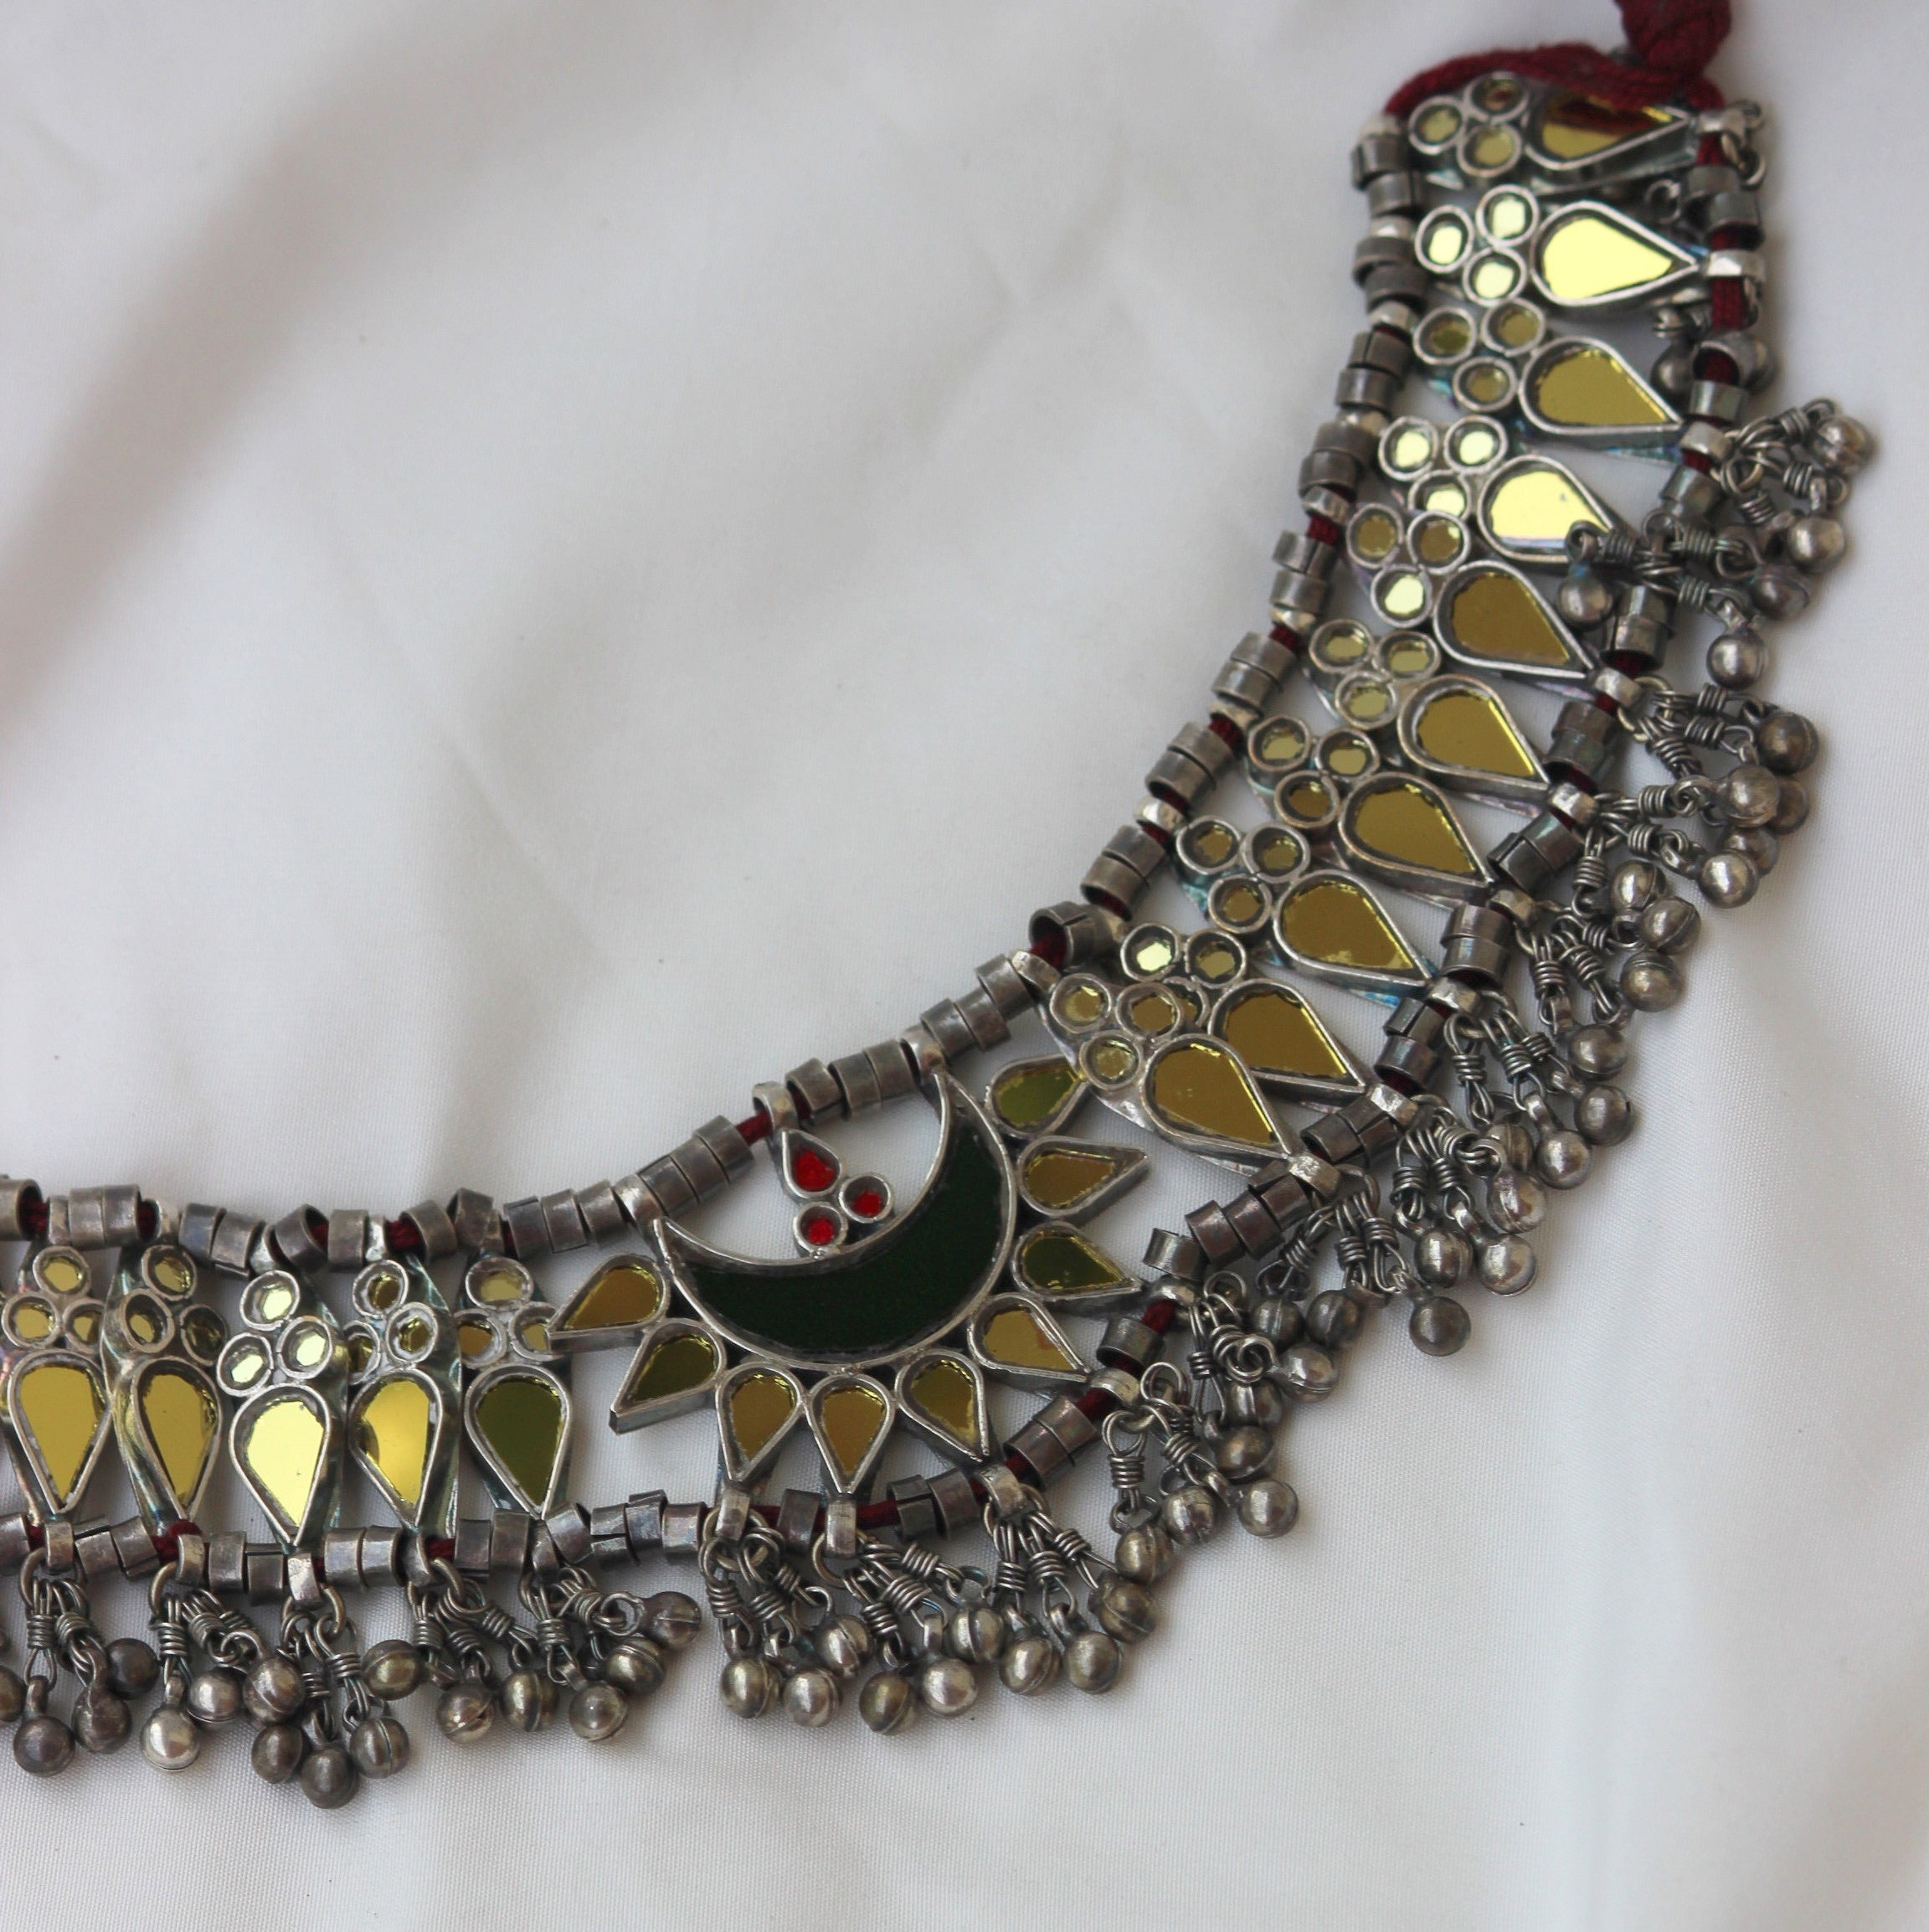 MIRROR WORK NECKPIECE ROUND THE NECK